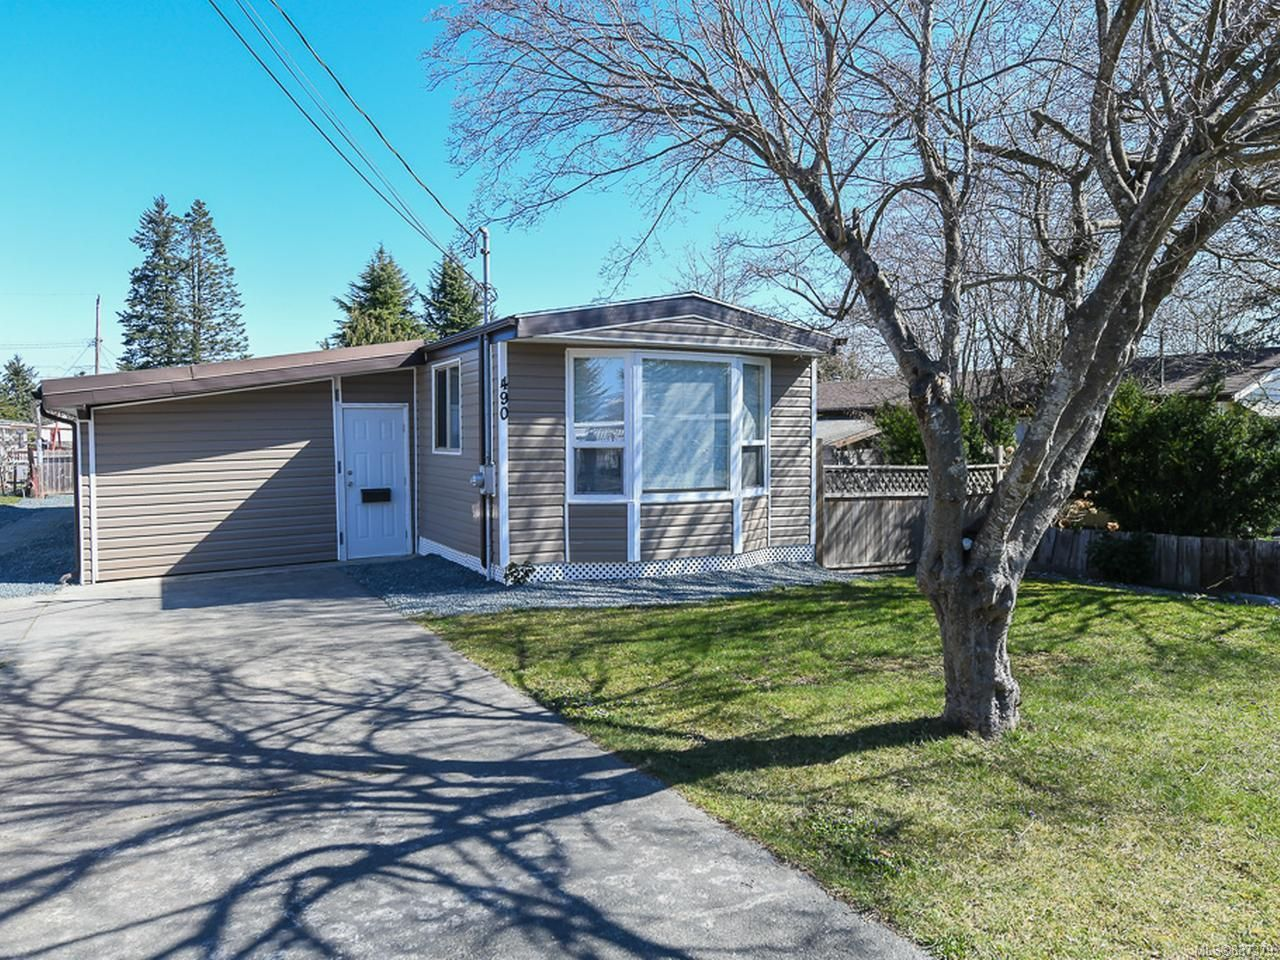 Main Photo: 490 Upland Ave in COURTENAY: CV Courtenay East Manufactured Home for sale (Comox Valley)  : MLS®# 837379